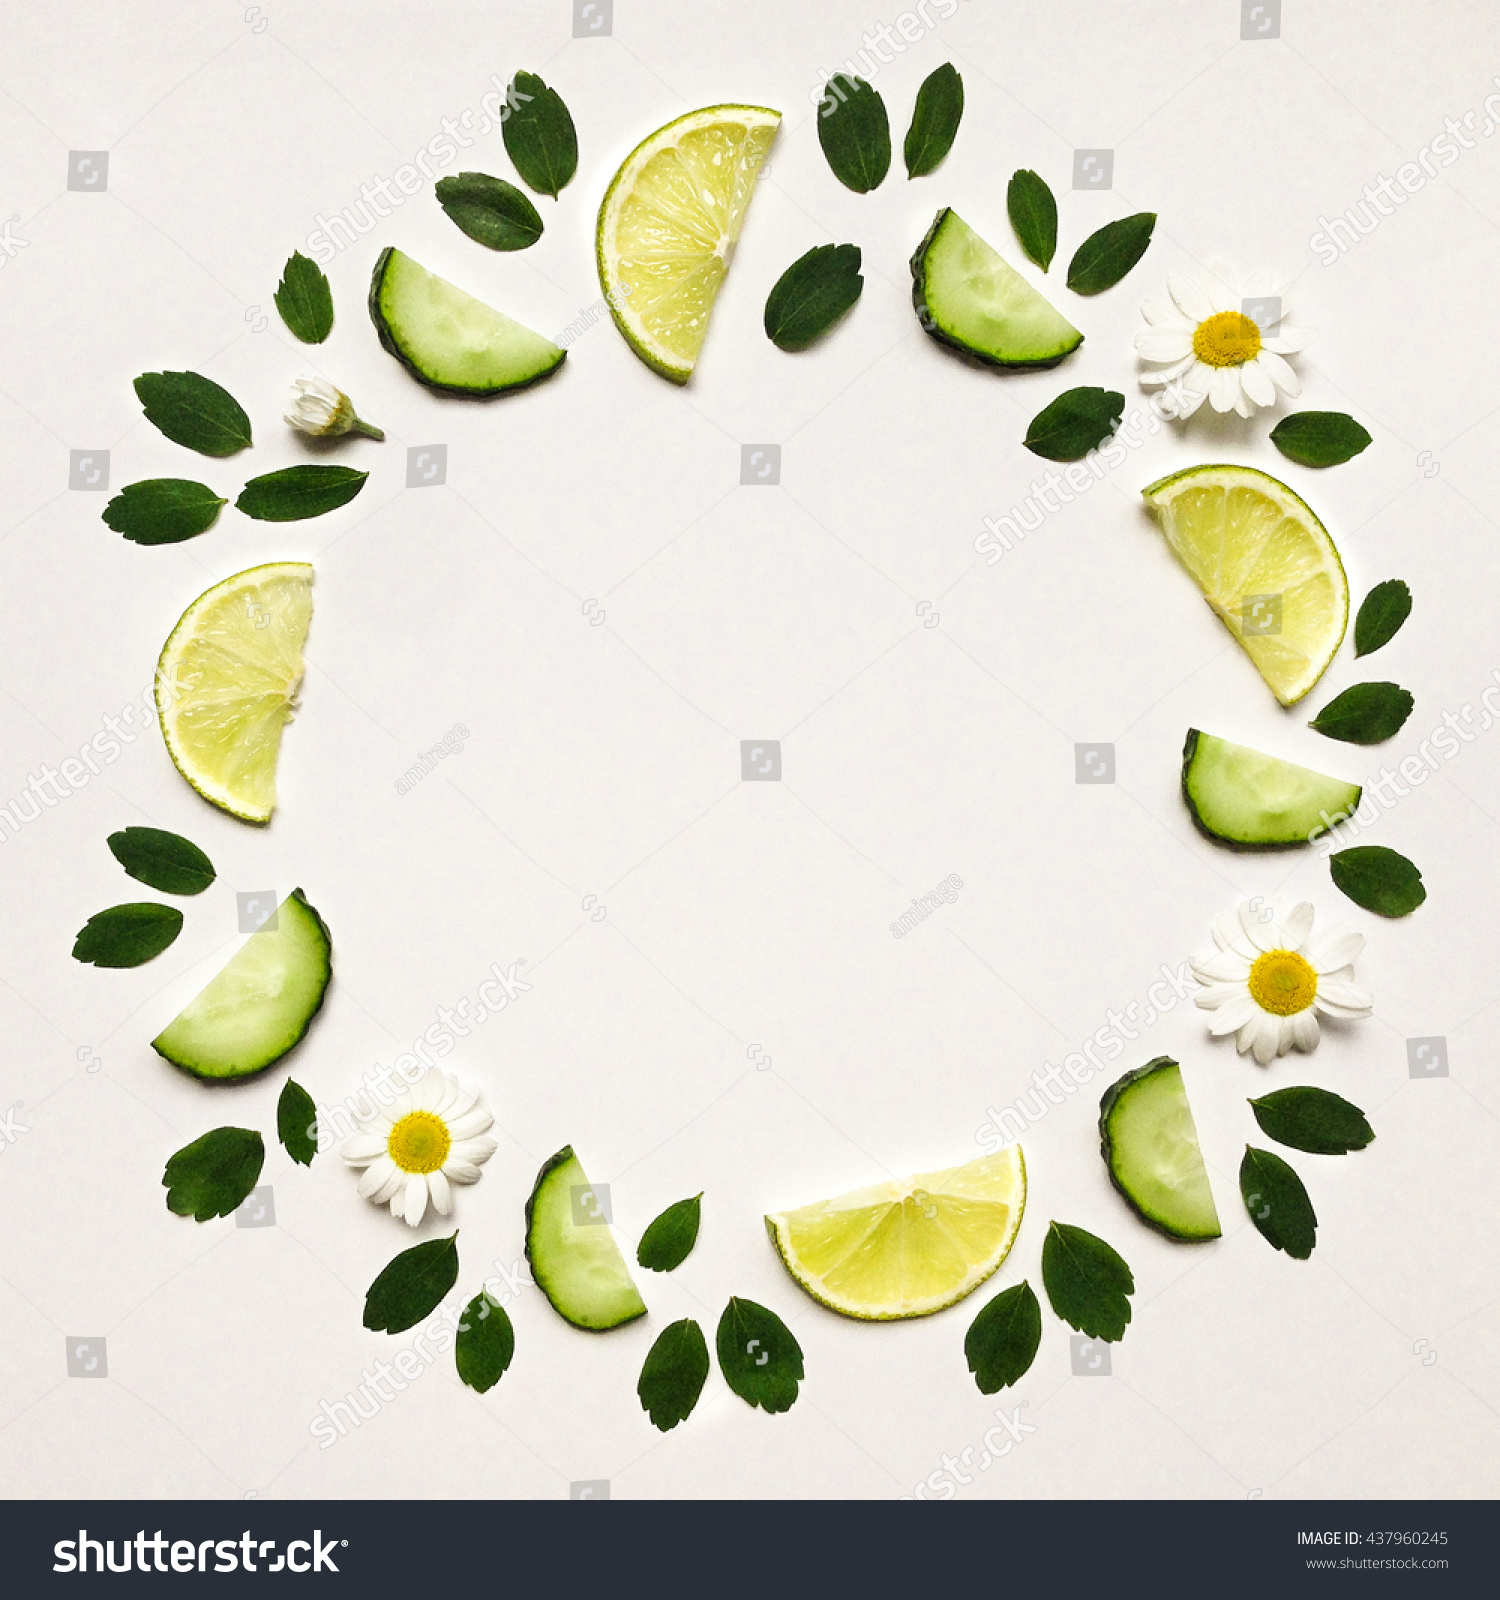 Colorful frame with fresh citrus fruits cucumbers leaves and flowers Flat lay on white table